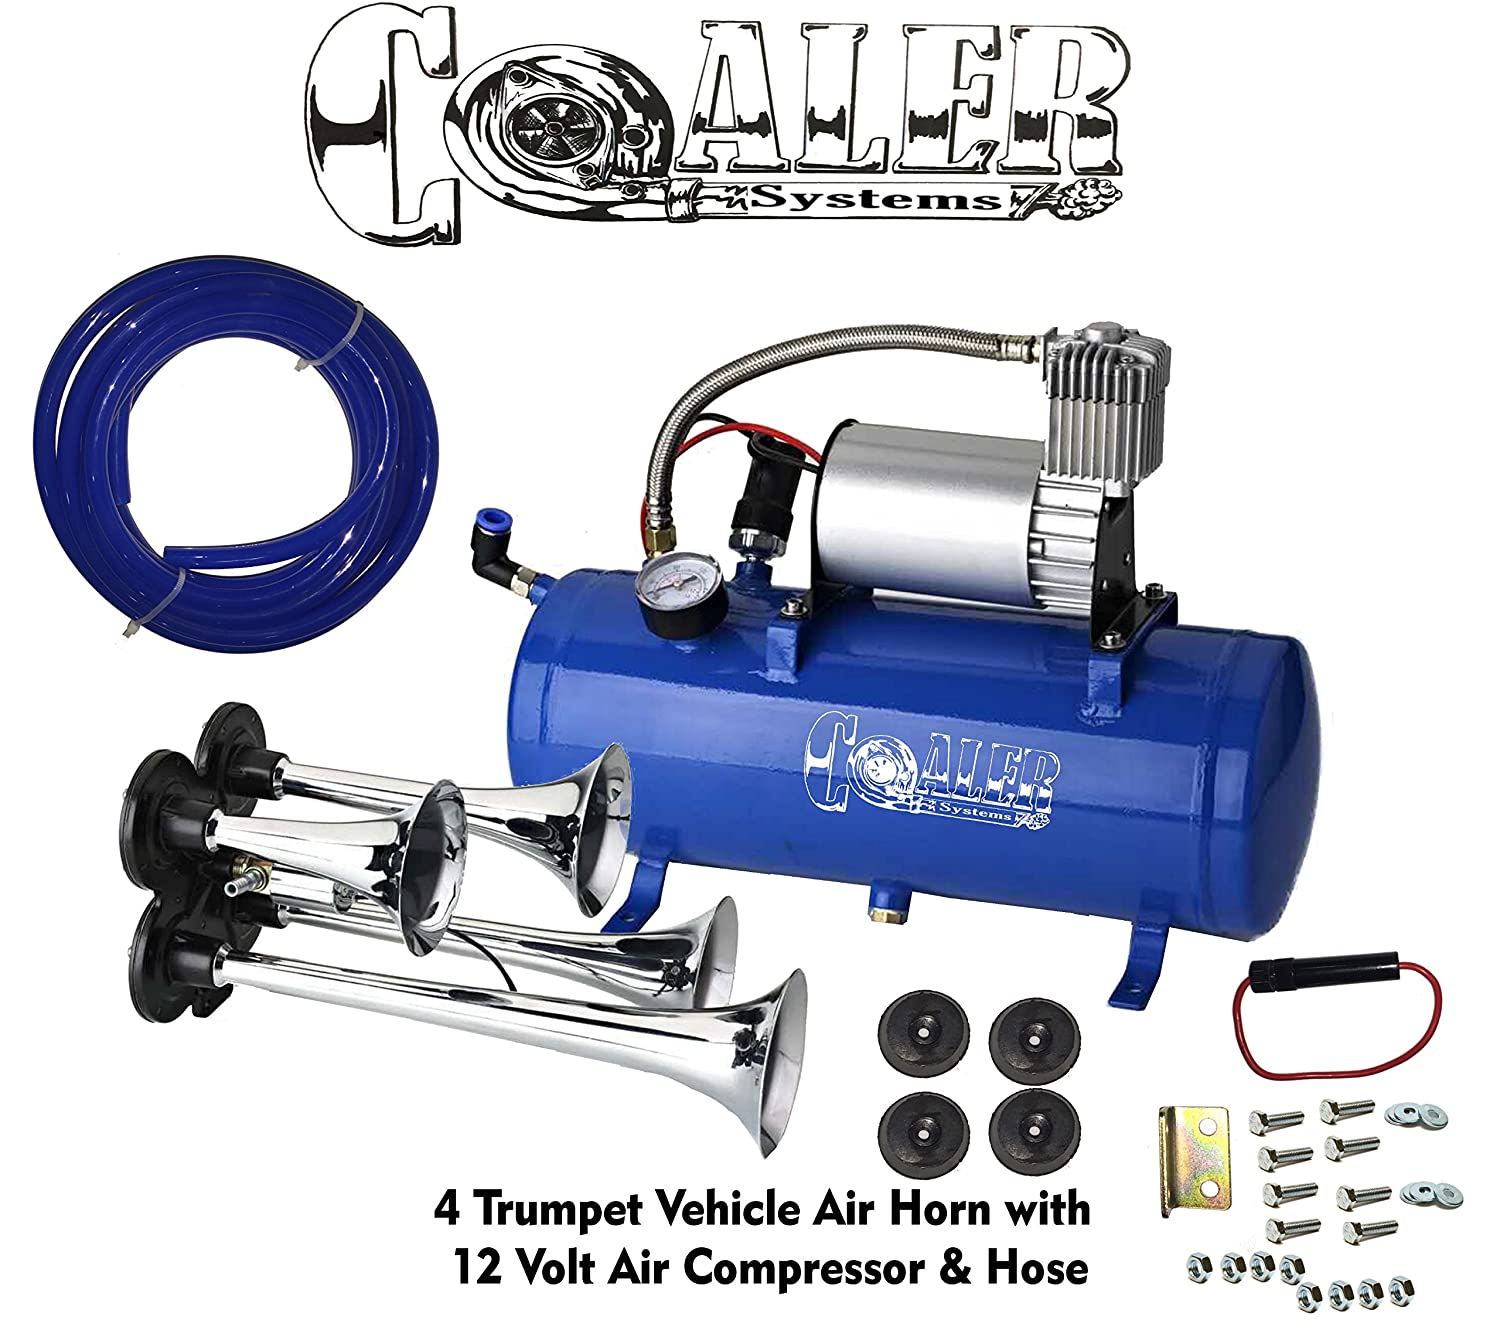 Air Horn Compressor >> Air Horn 4 Trumpet 12 Volt Compressor 9ft Hose 150 Db Train 120 Psi Kit Truck